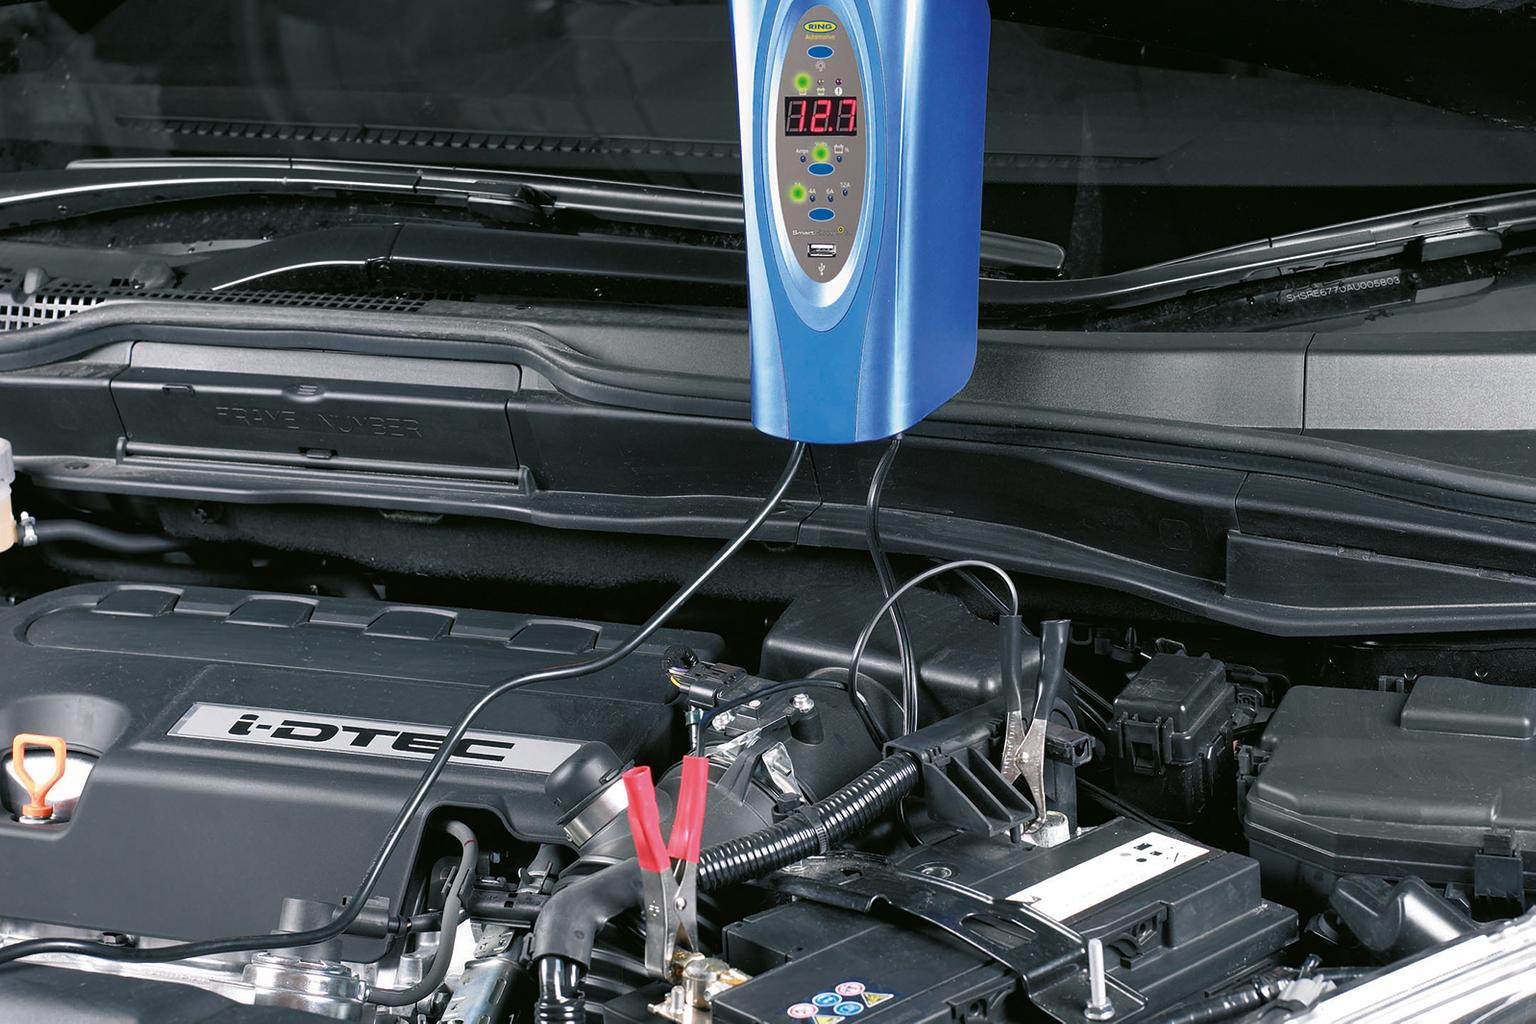 How can I extend the life of my car battery?